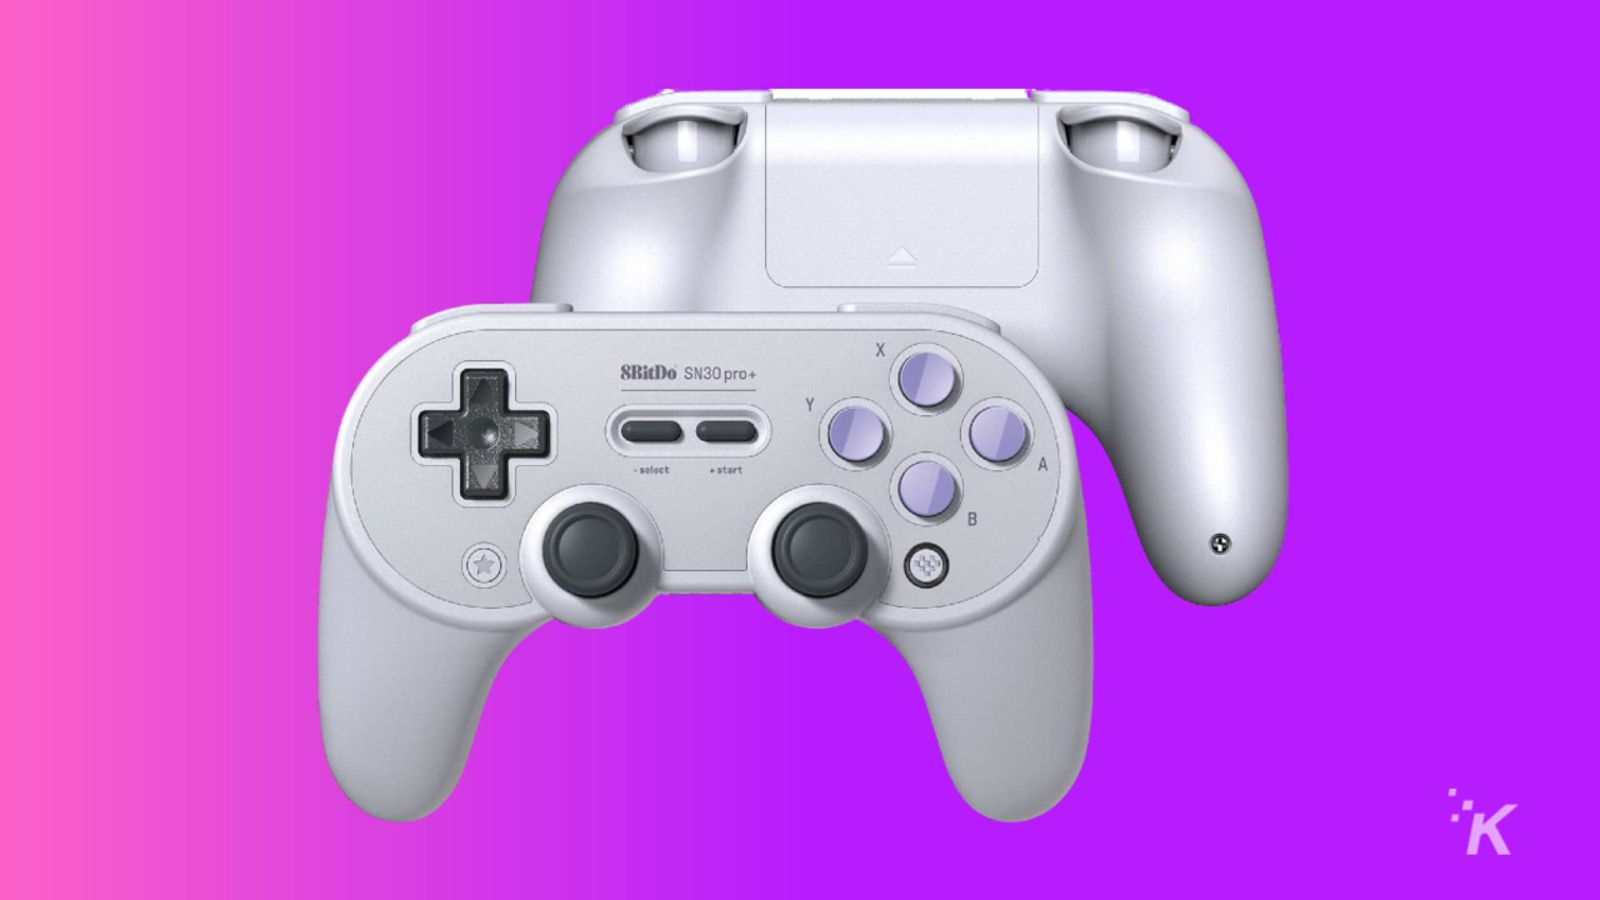 8bitdo sn30 pro controller knowtechie gift guide